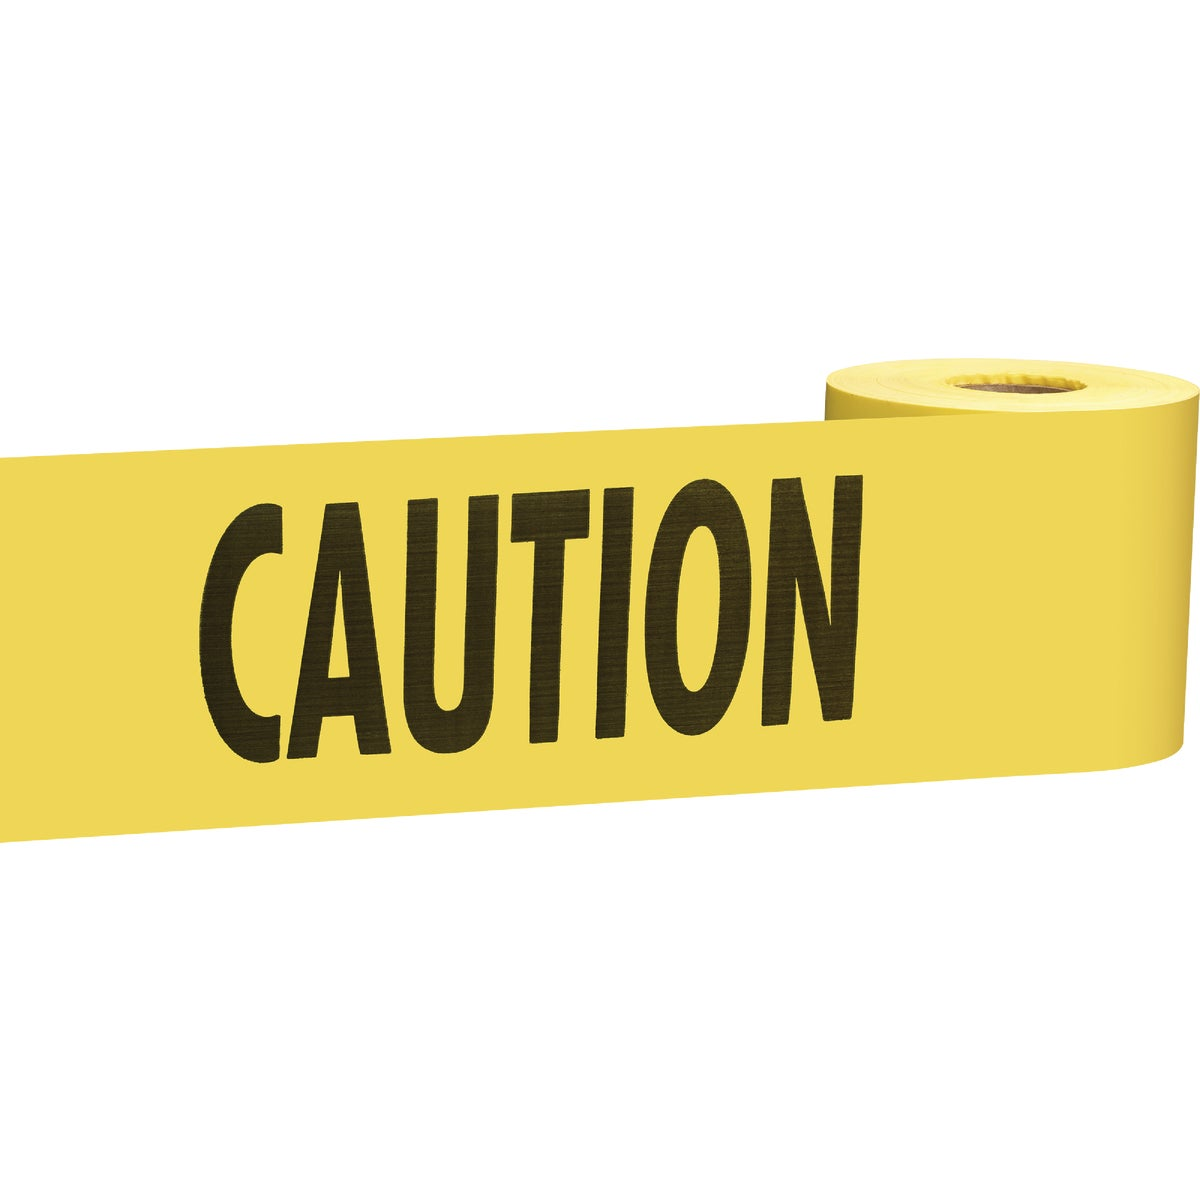 """300'X3"""" CAUTION TAPE - 66200 by Irwin Industr Tool"""